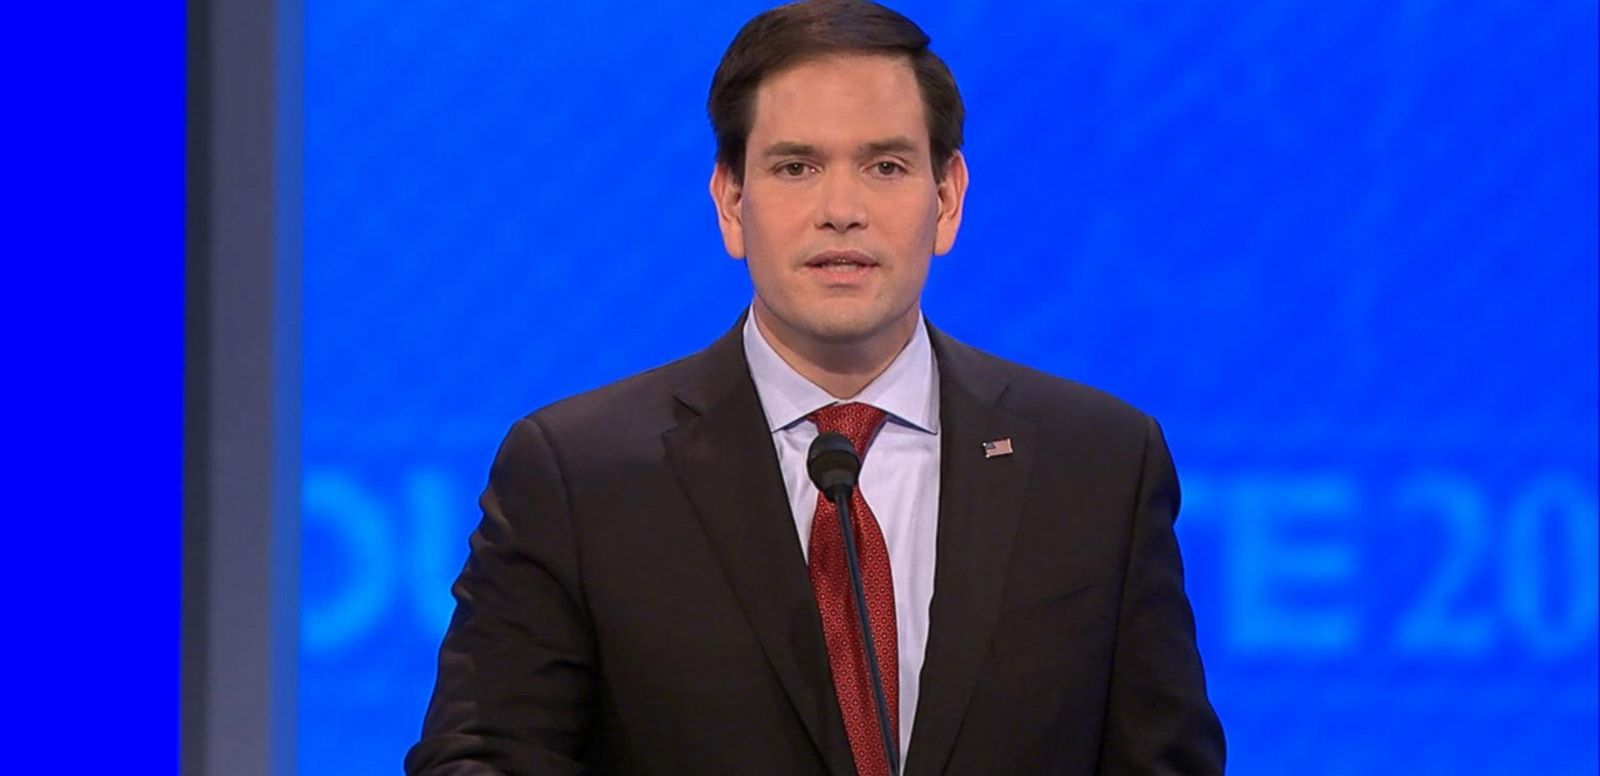 VIDEO: Marco Rubio: 'We Will Leave Our Children What Our Parents Left Us'